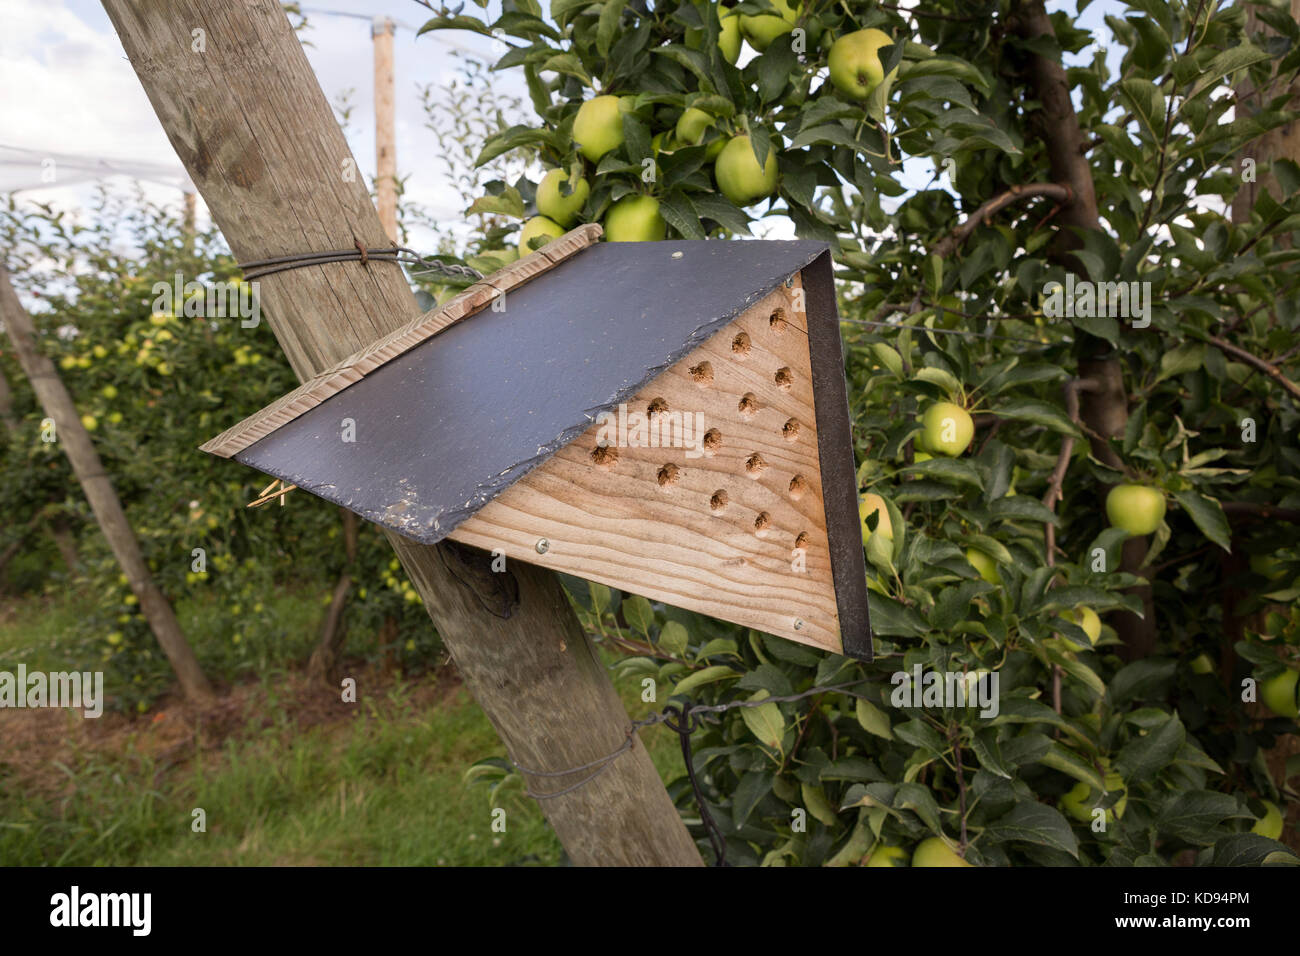 A Mason Bee House In An Organic Apple Orchard To Stimulate Pollination